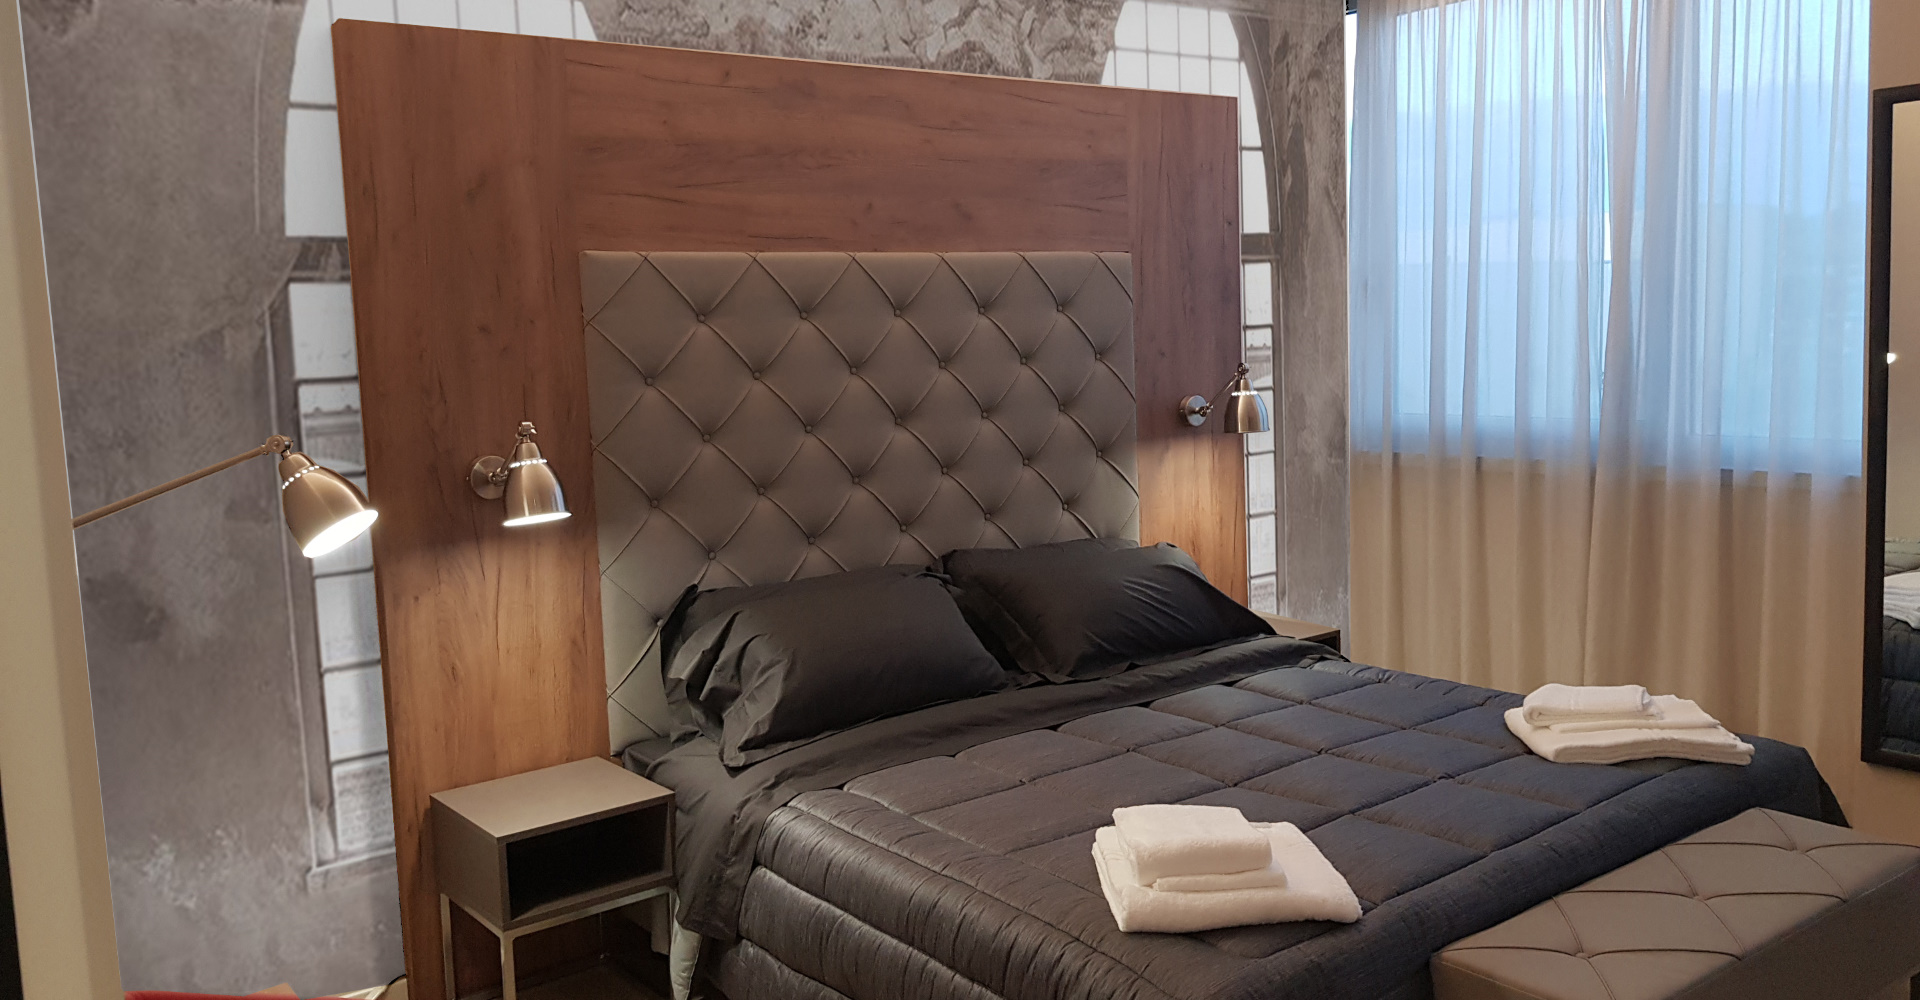 Hotel bedroom/residence/B&B furniture, Zeus model, 38 mm thickness, 100% made in ITaly